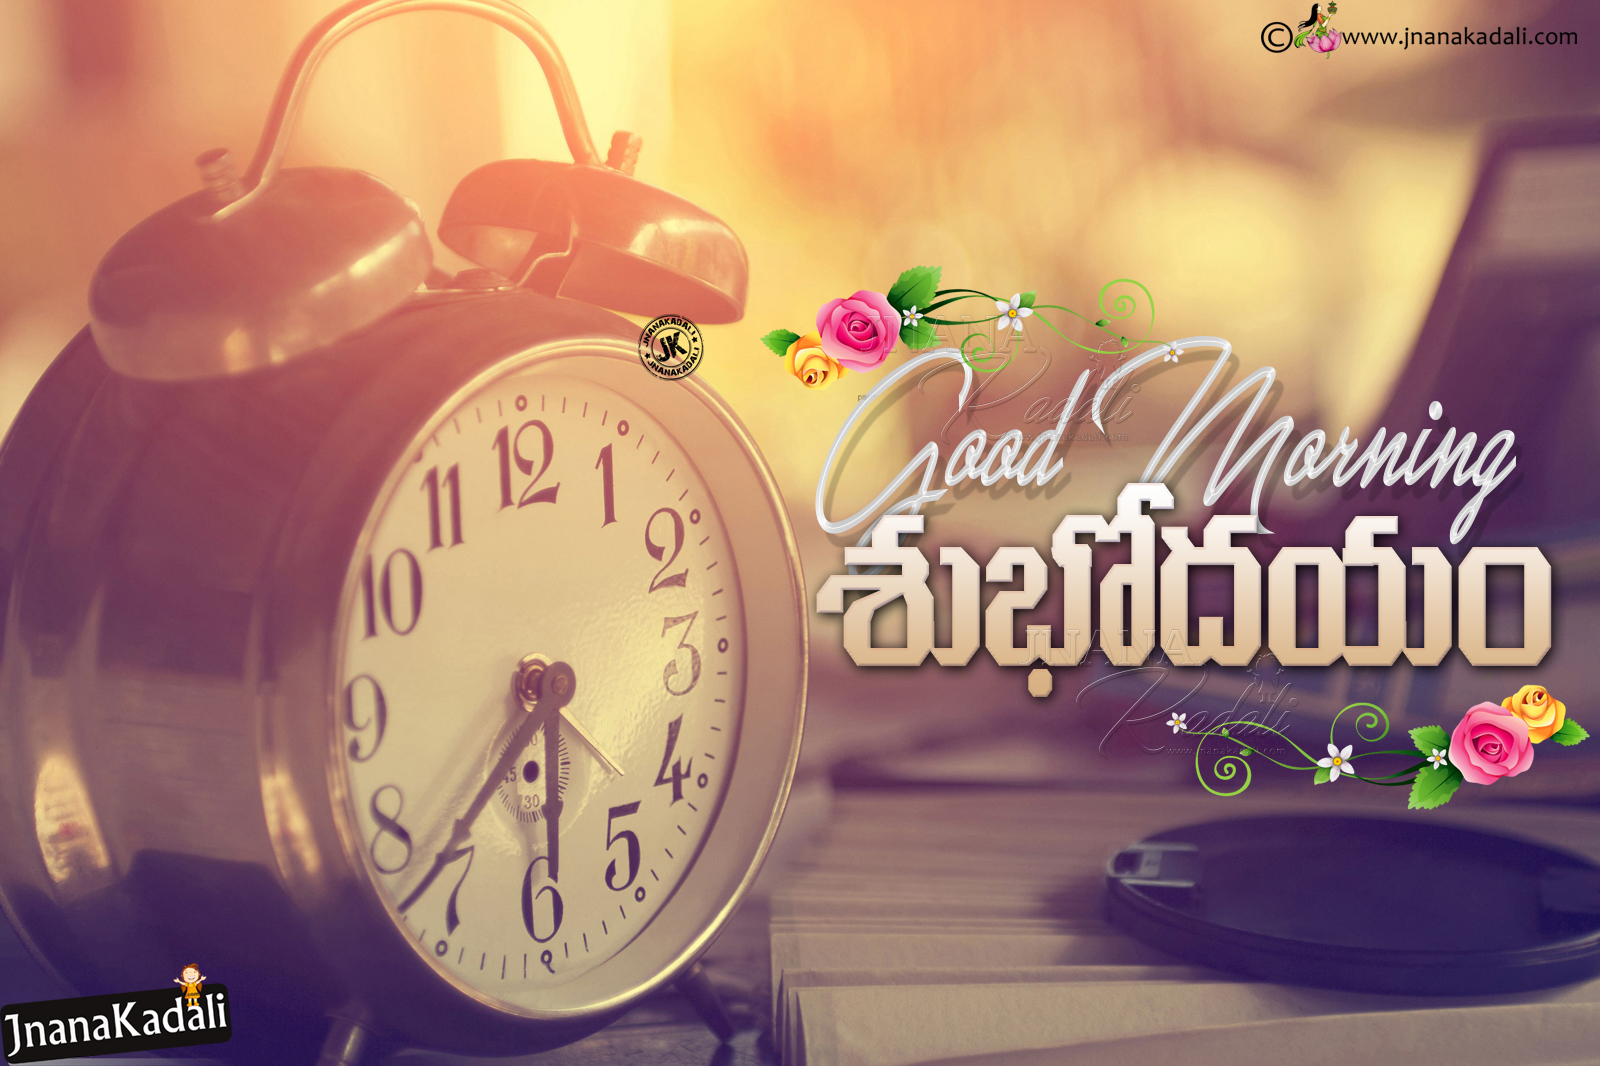 Telugu good morning greetings with hd wallpapers subhodayam telugu good morning telugu quotes good morning quotes in telugutelugu messages kristyandbryce Images